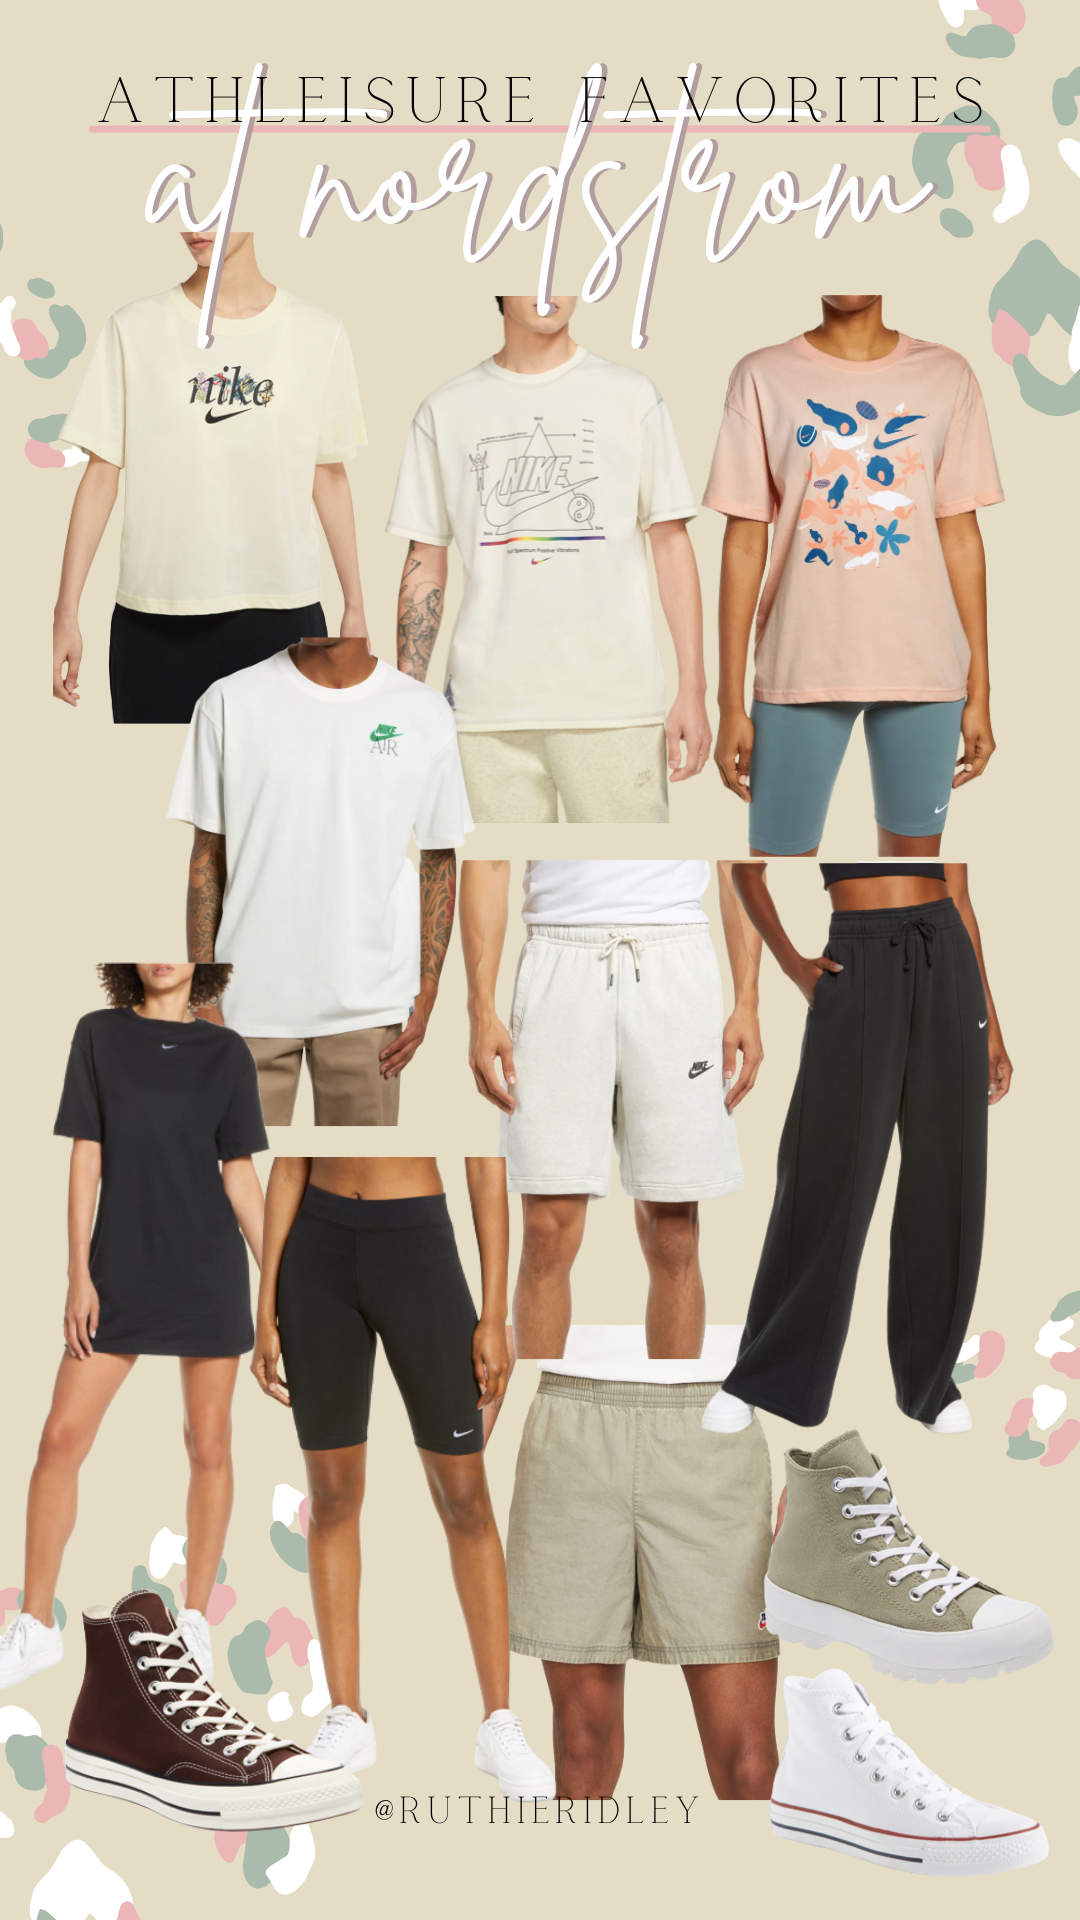 Ruthie Ridley Blog Jumping Into Spring With Nordstrom Athleisure